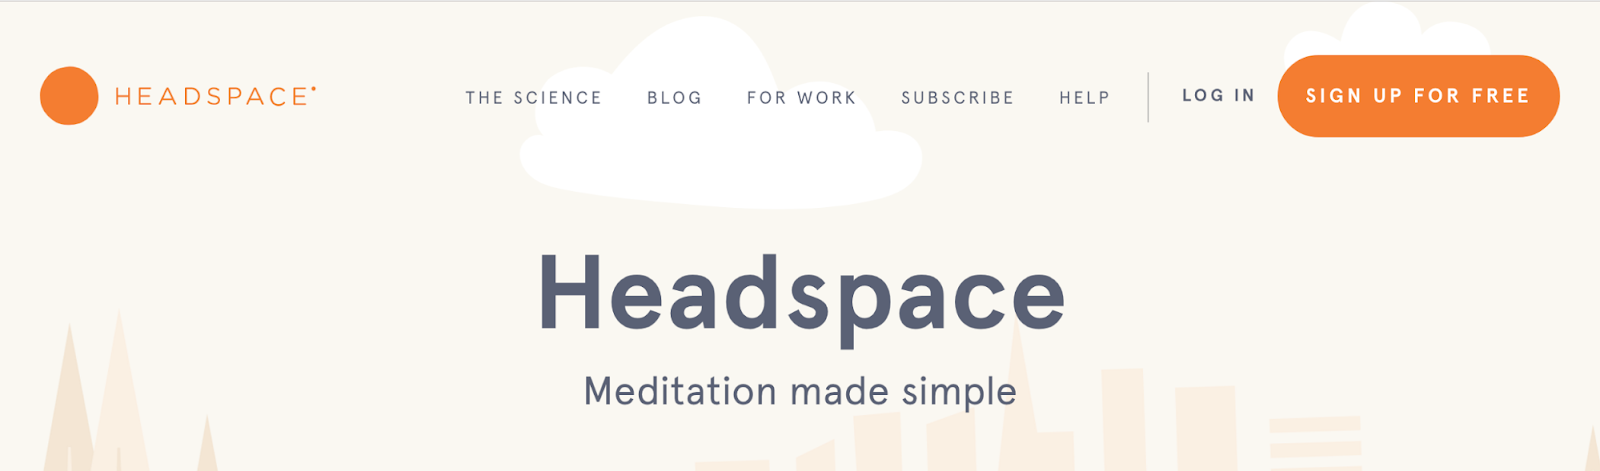 Screenshot showing Headspace